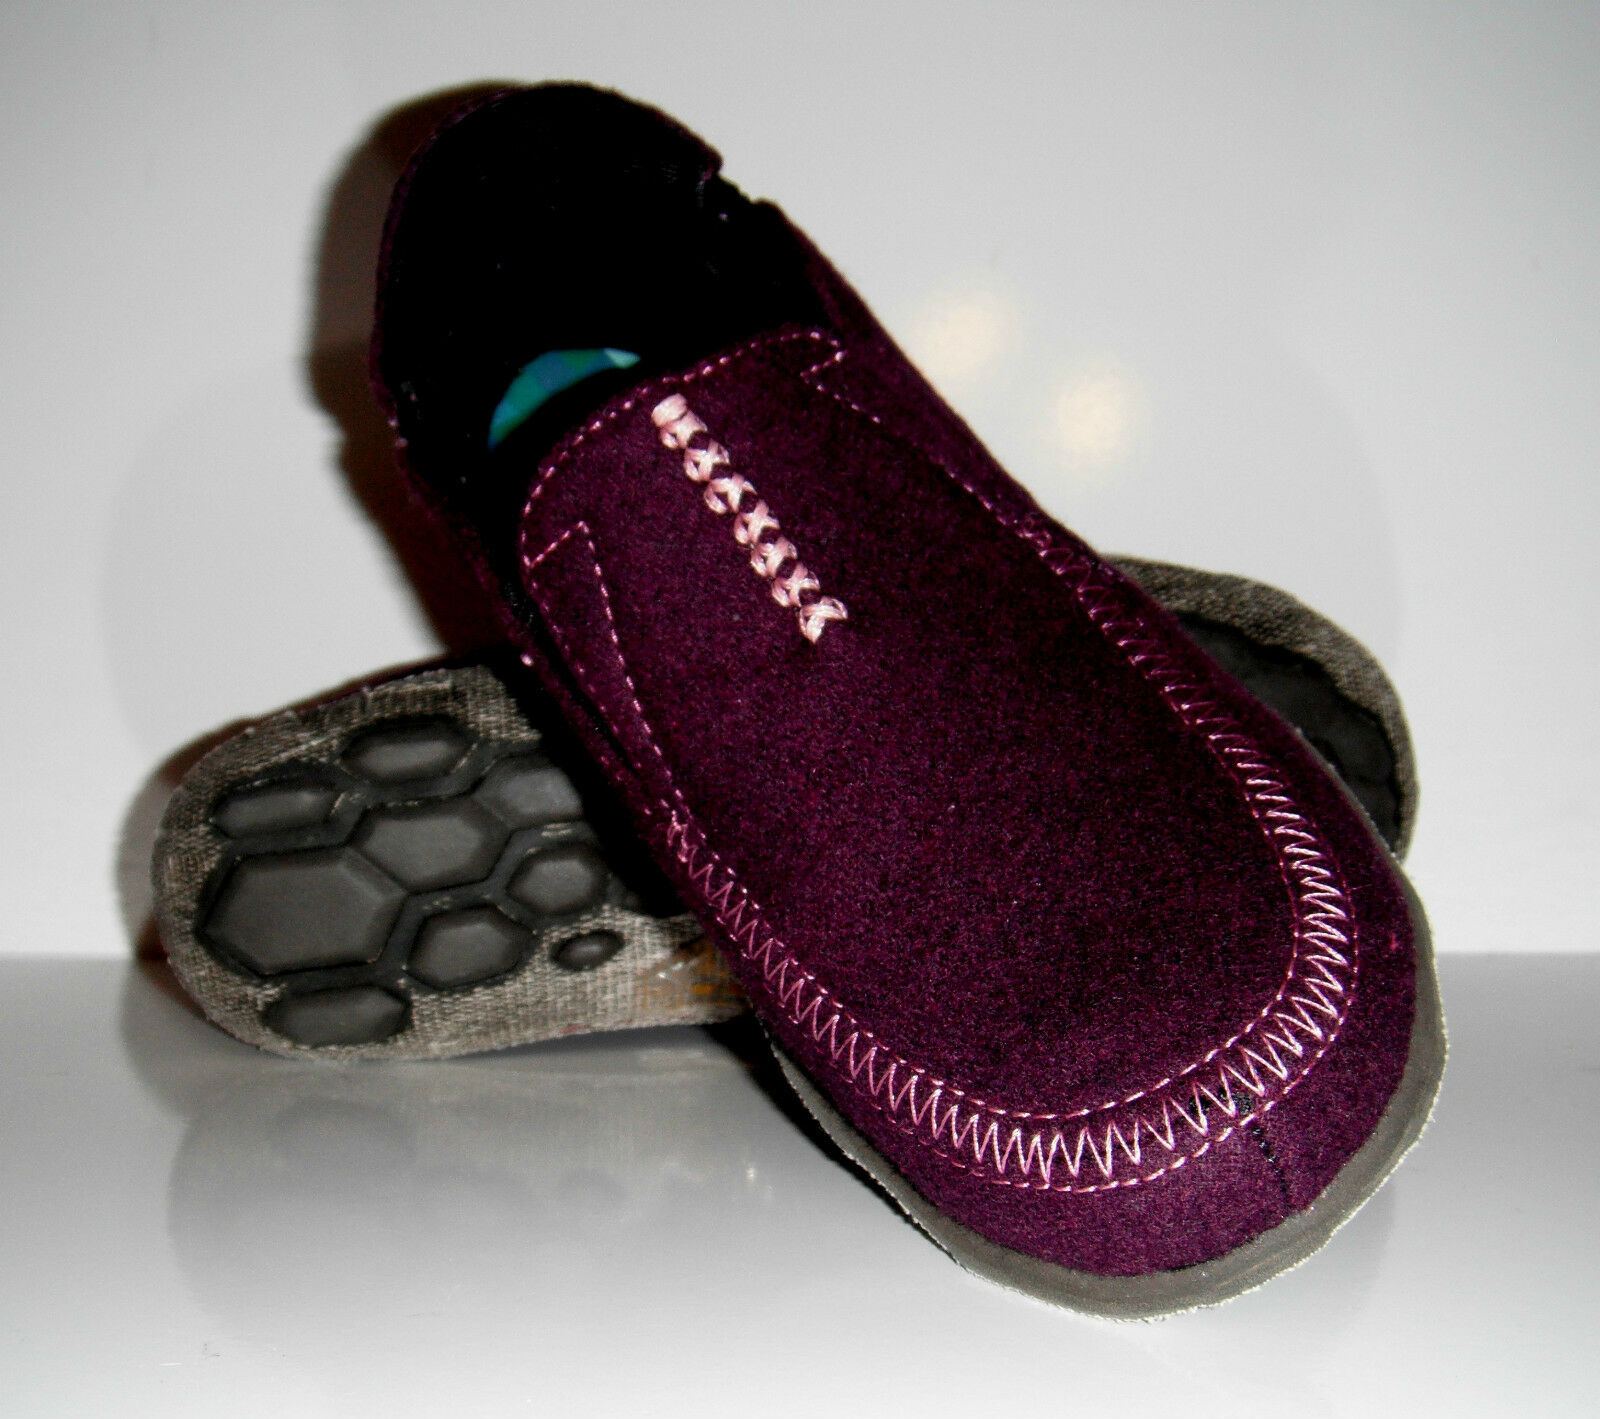 New Cushe Women's Surf Surf Surf Slipper Purple Slip-On Loafer shoes sz 6 Extremely comfy ec6e7c